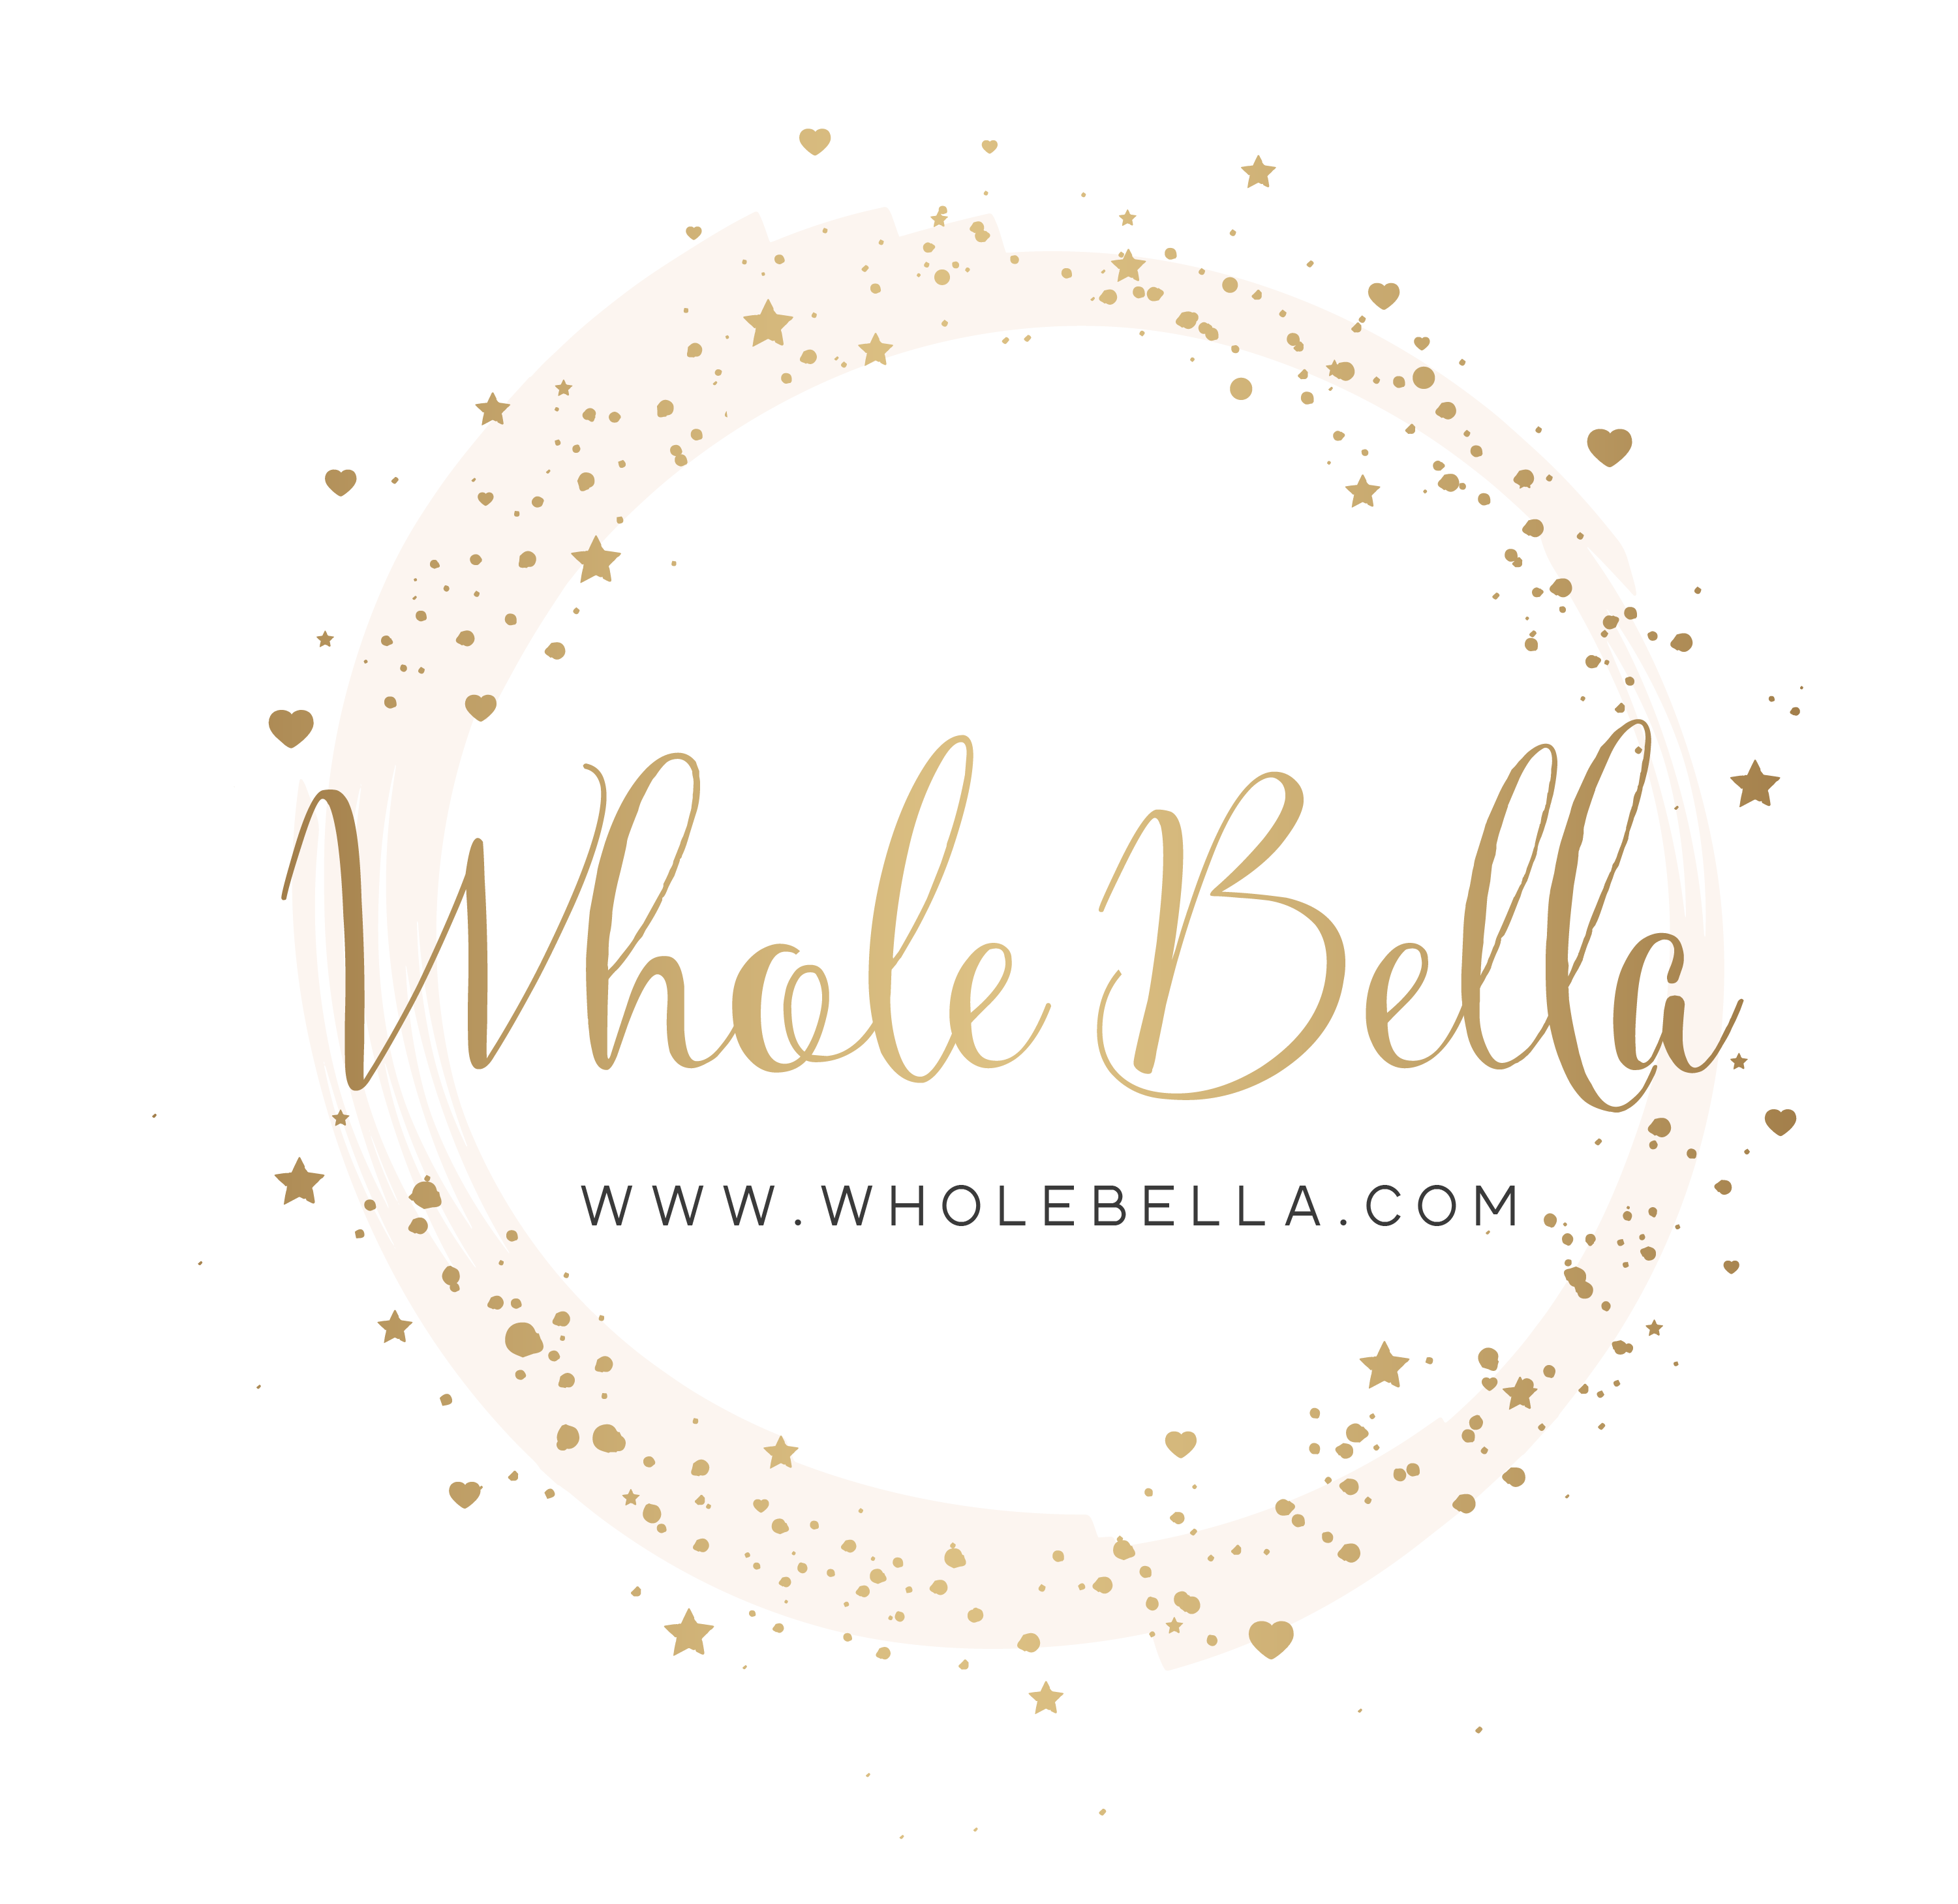 whole bella logo with website link